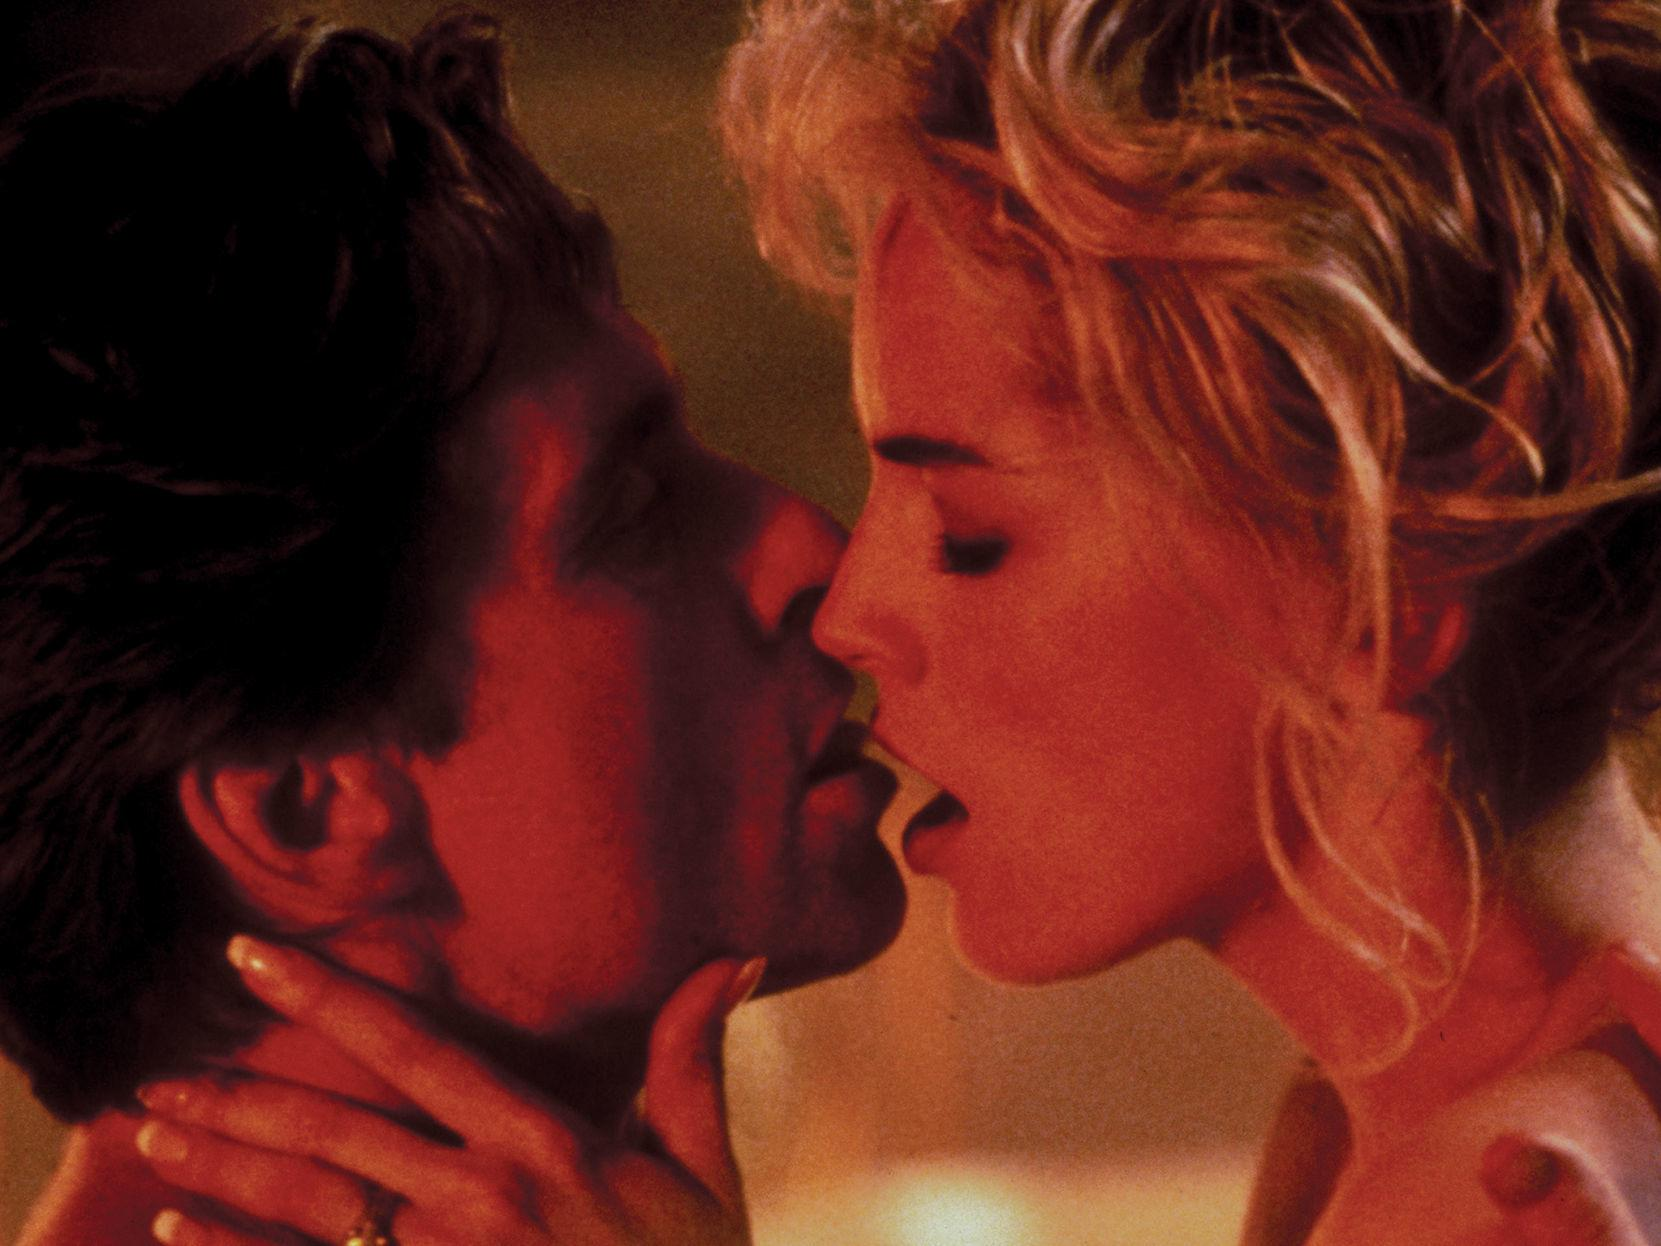 An ode to the sweaty sex thriller, a movie genre that defined the '90s